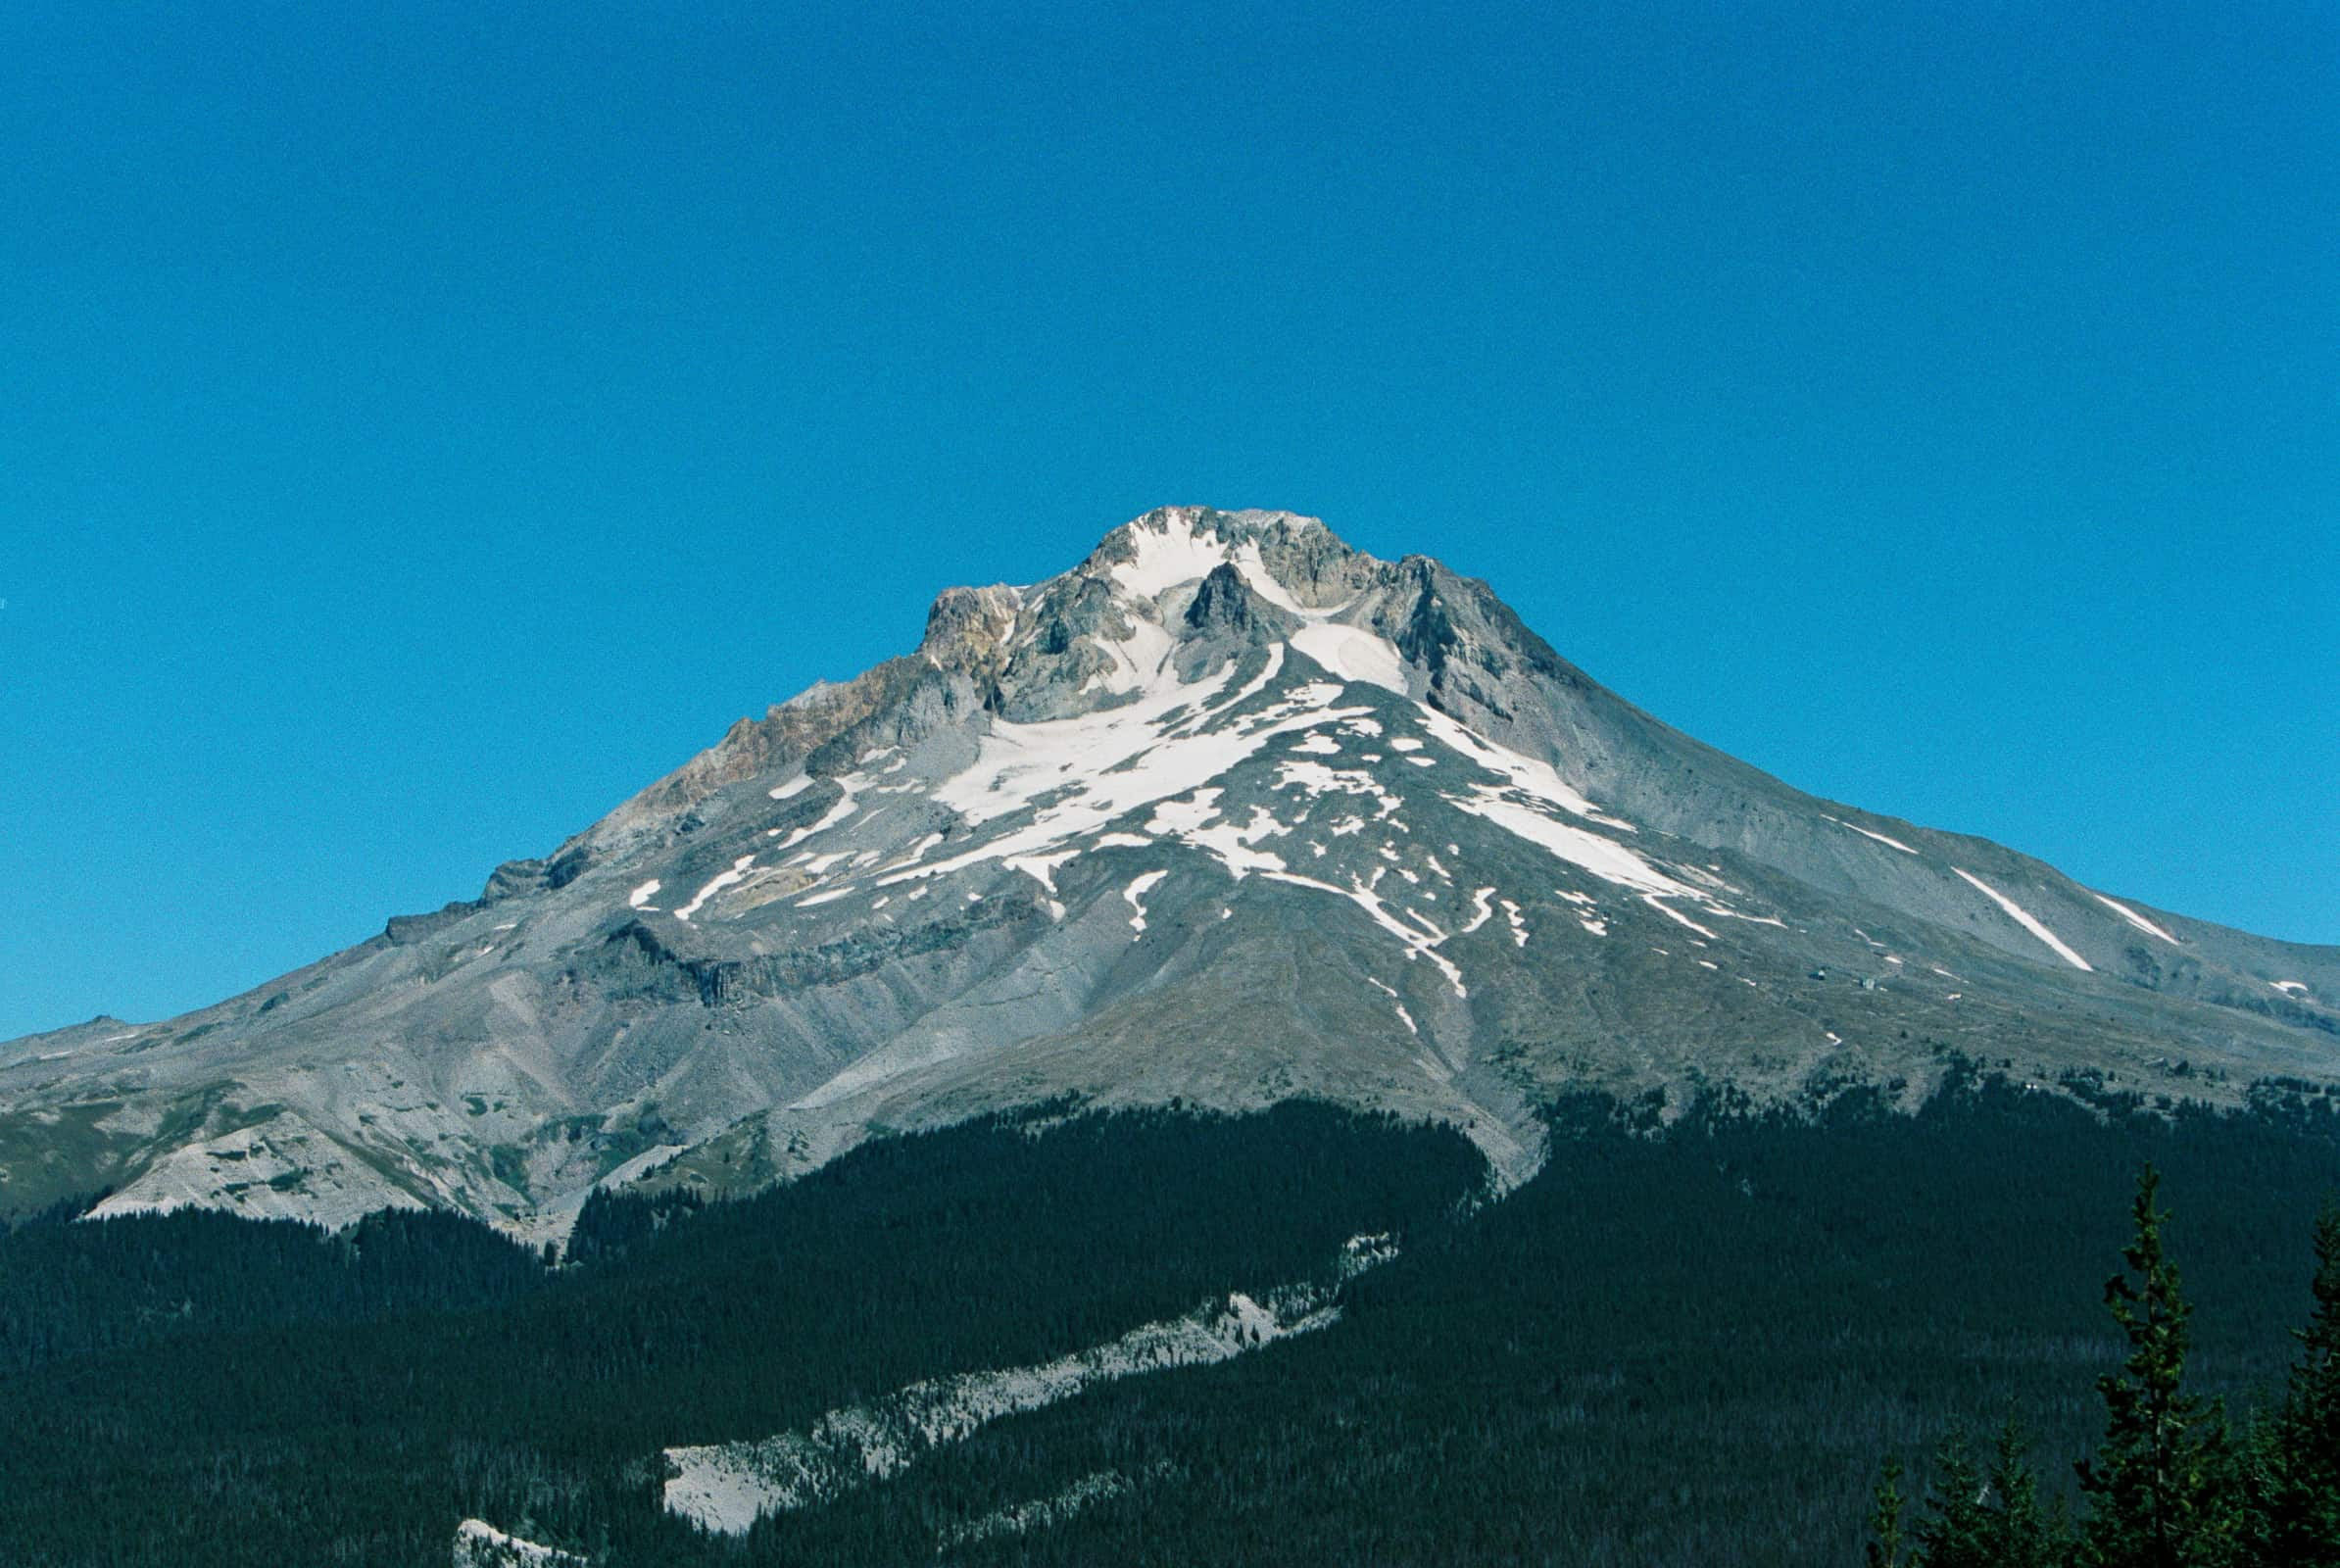 view of mt hood with blue sky